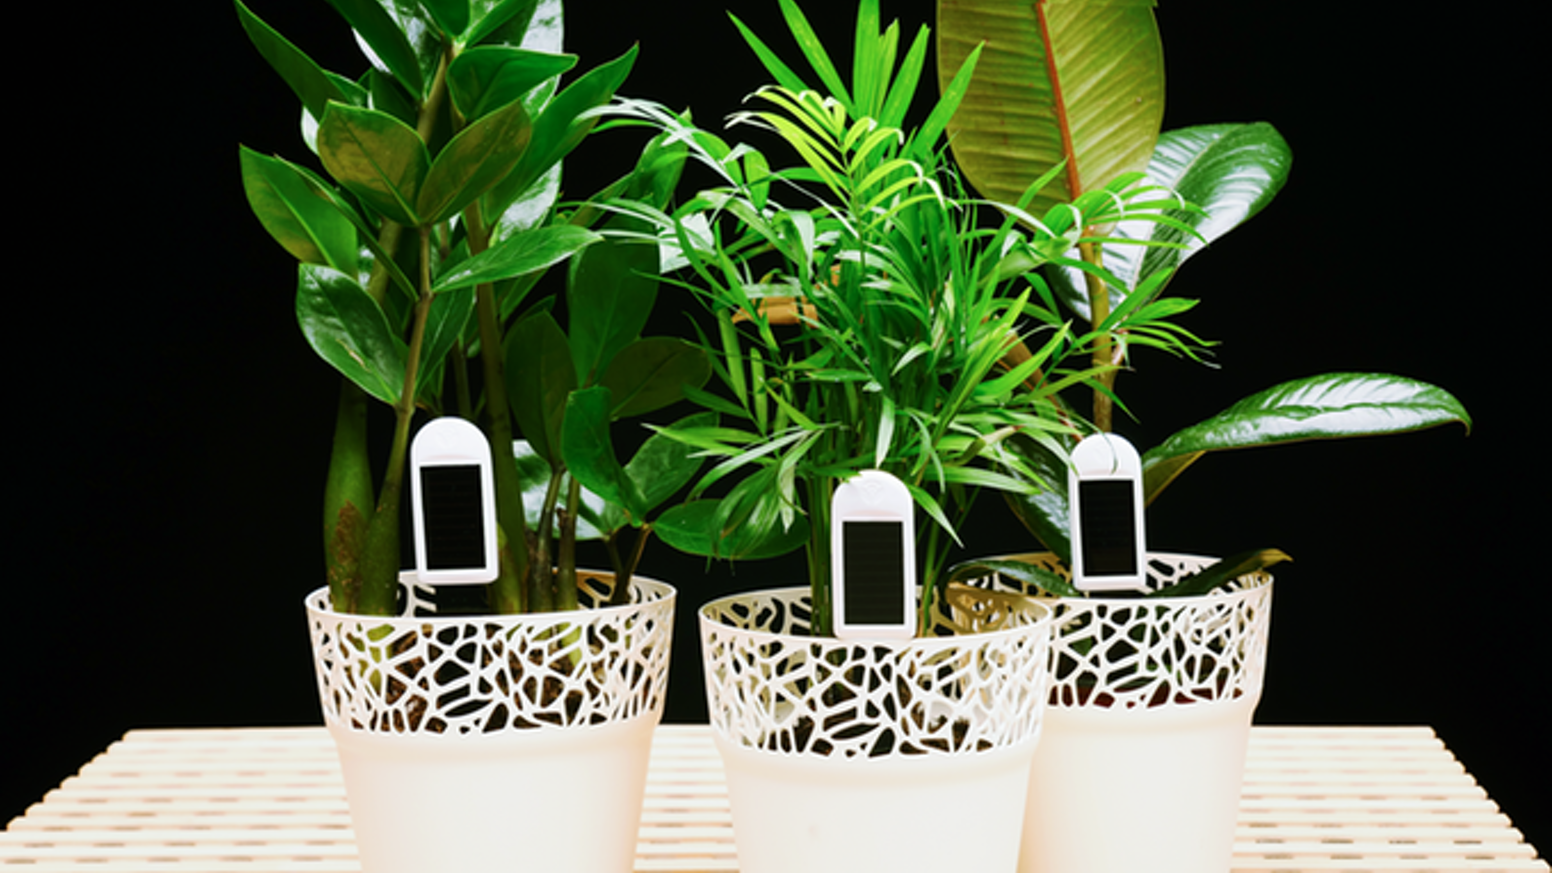 Smart greensens sensors allow you to monitor the health of your flowers and houseplants at any time and from any place.